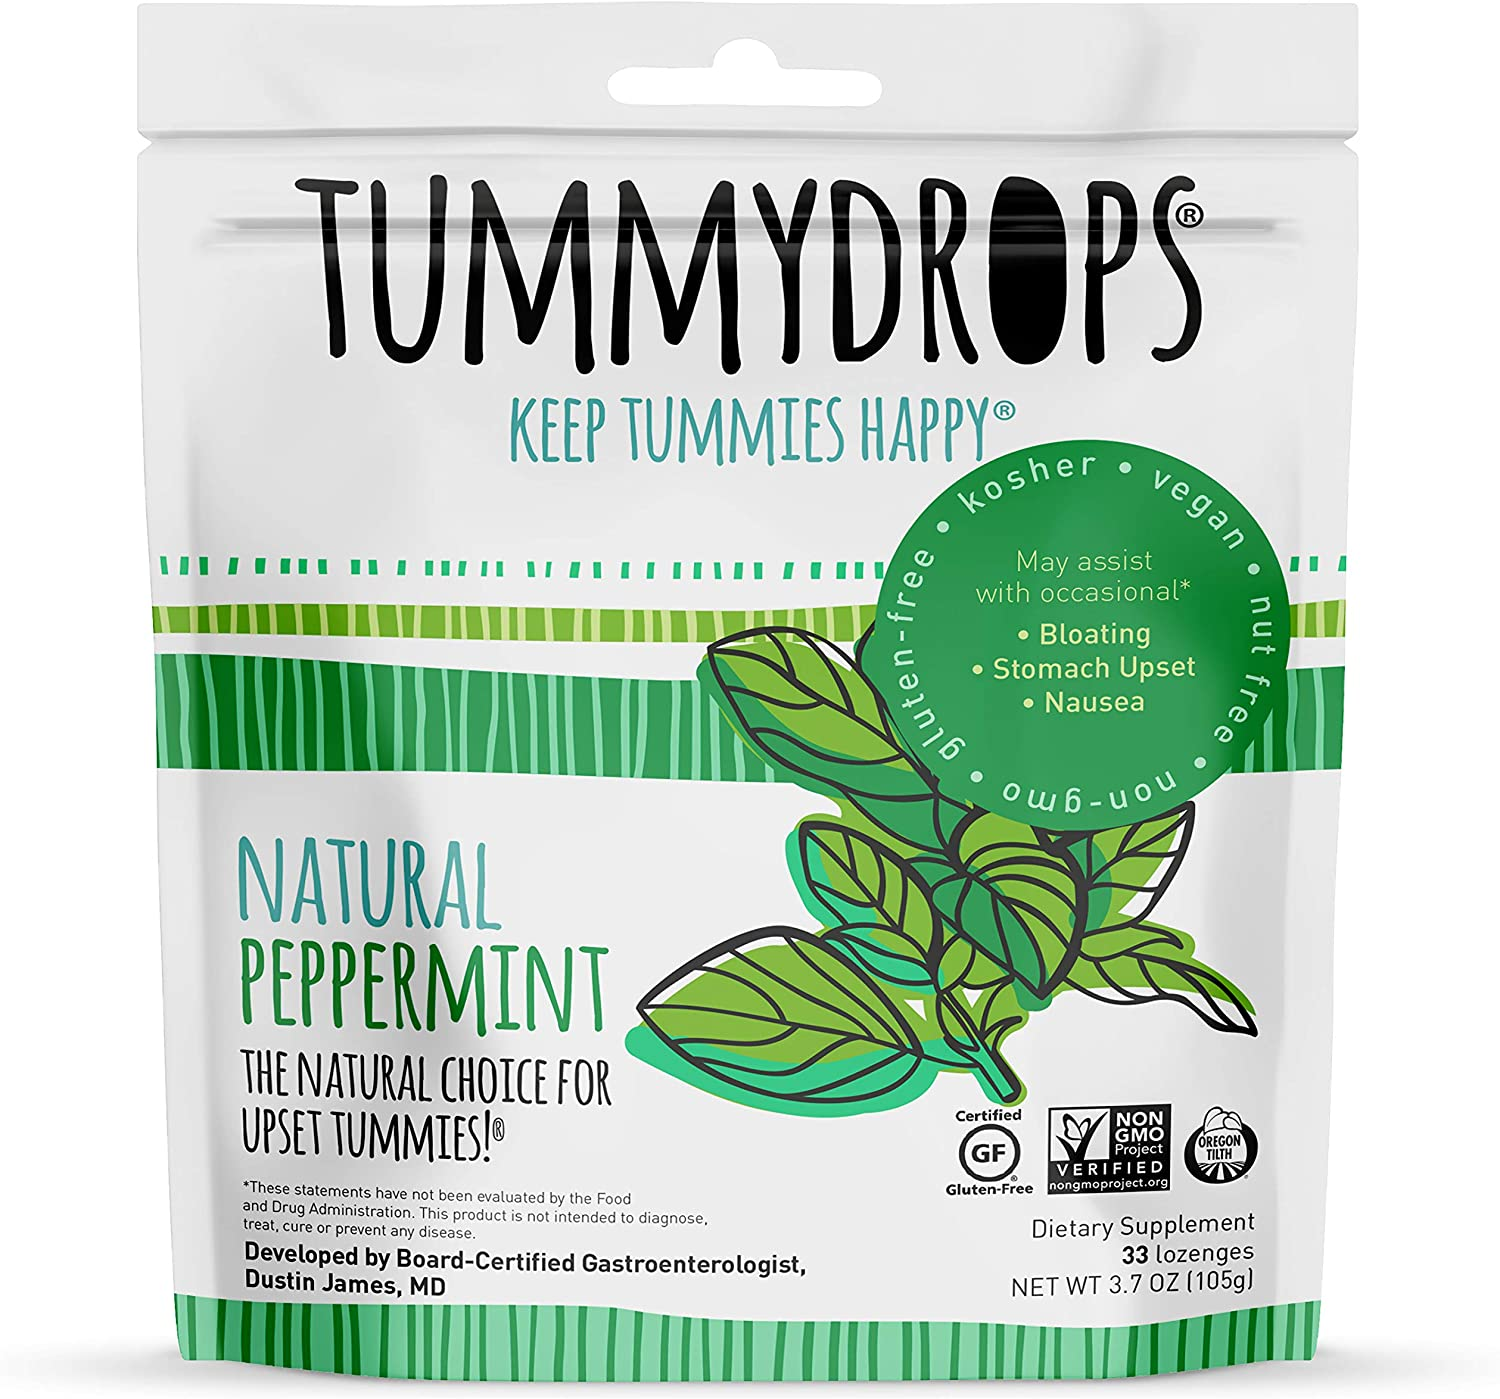 Natural, Organic Peppermint Tummydrops